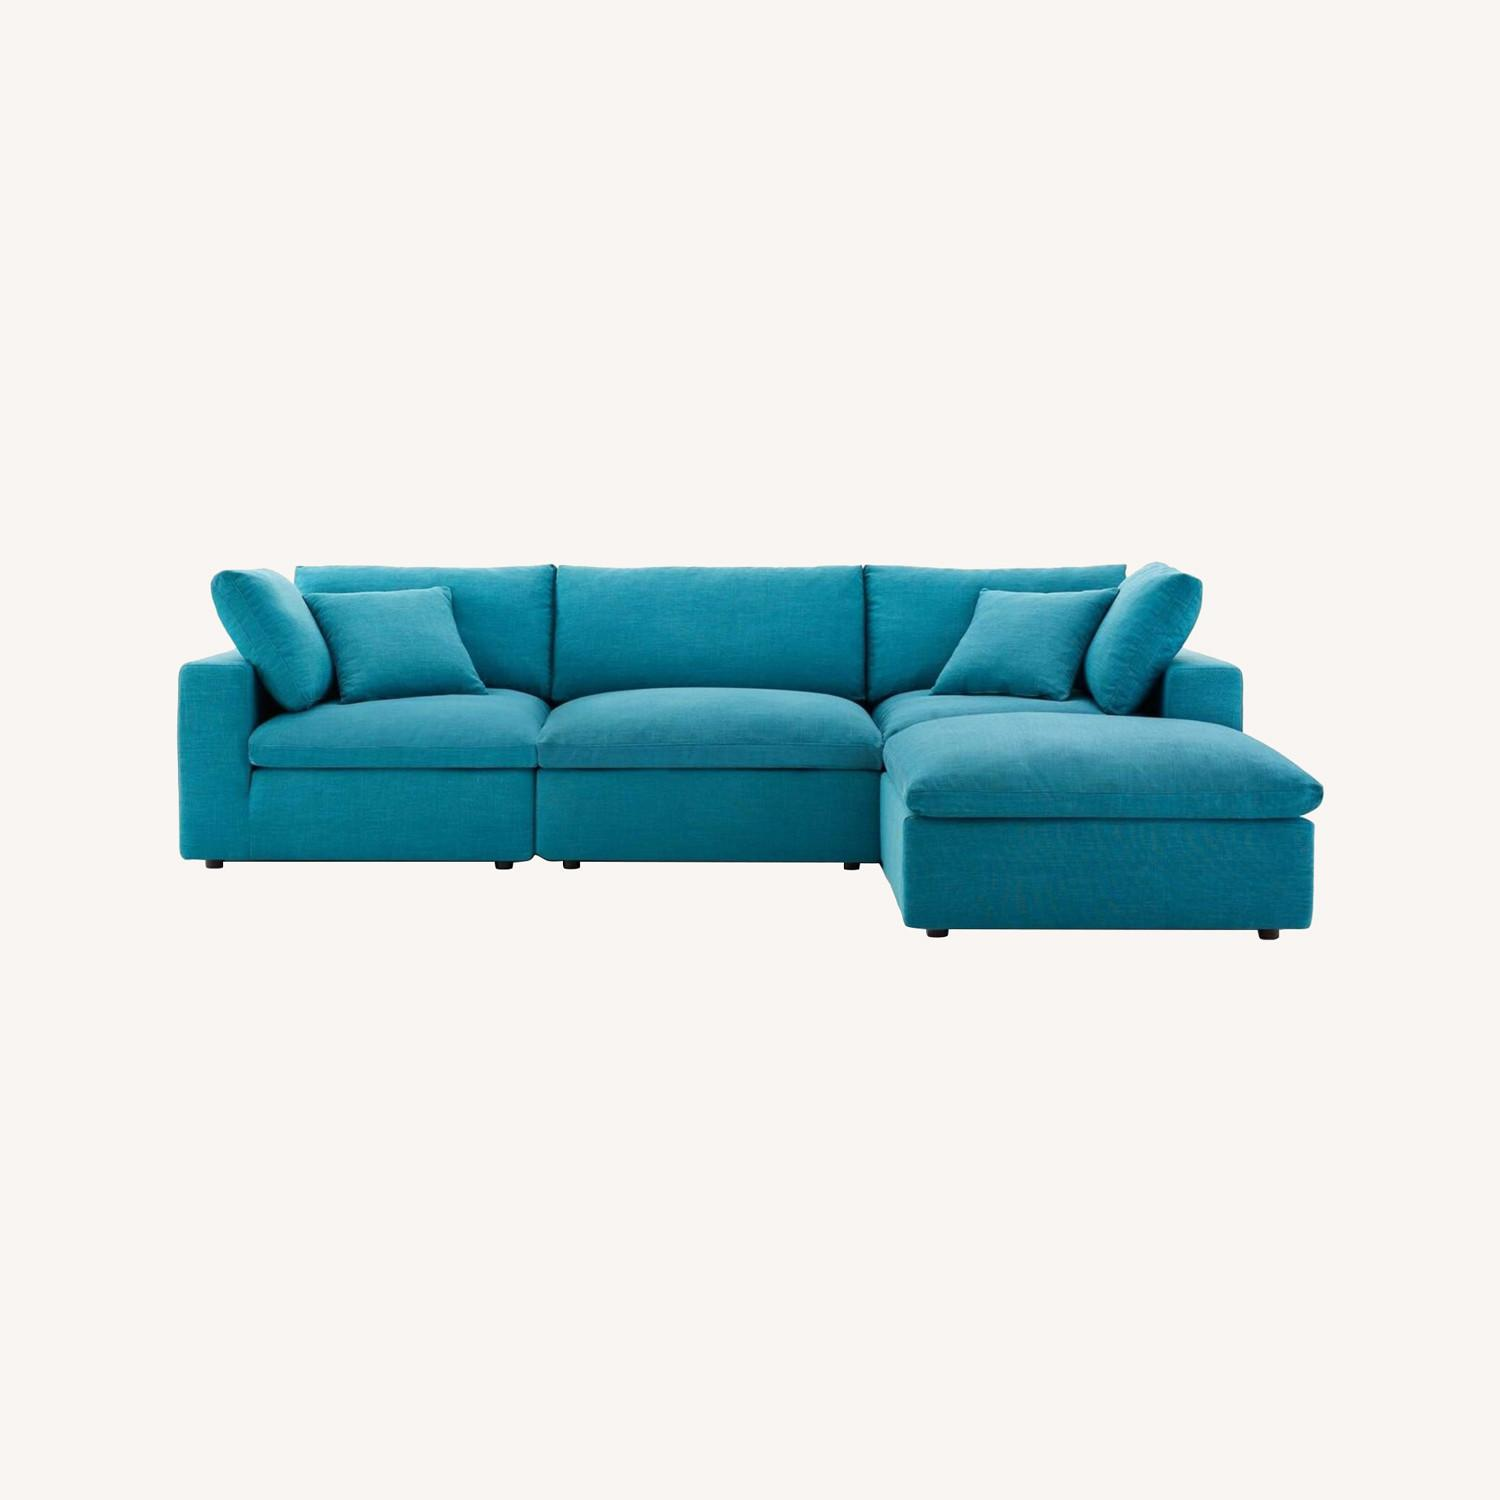 4-Piece Sectional In Teal Polyester & Linen Fabric - image-8